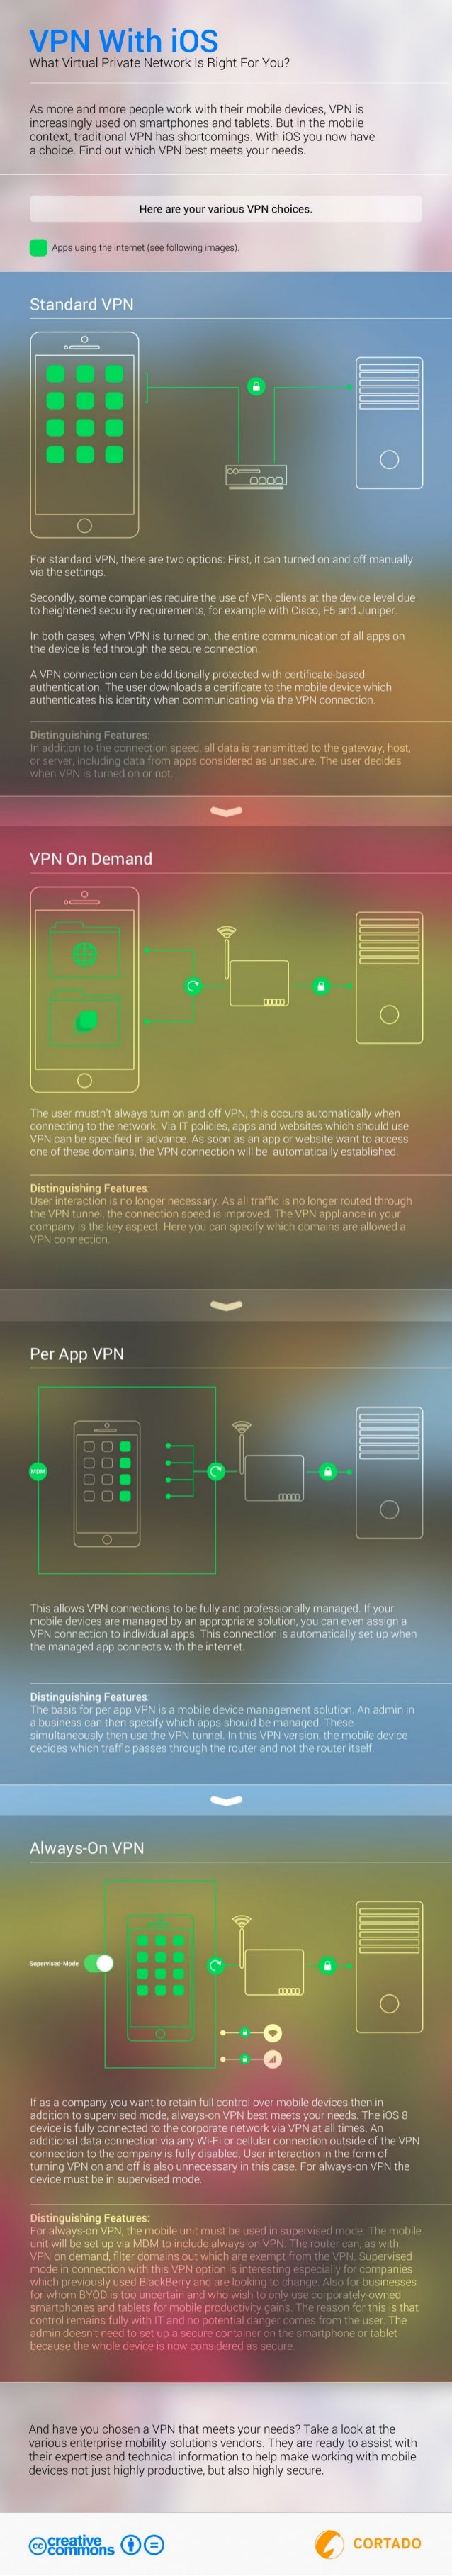 VPN With iOS  What Virtual Private Network Is Right For You?   As more and more people work with their mobile devices,  VP...